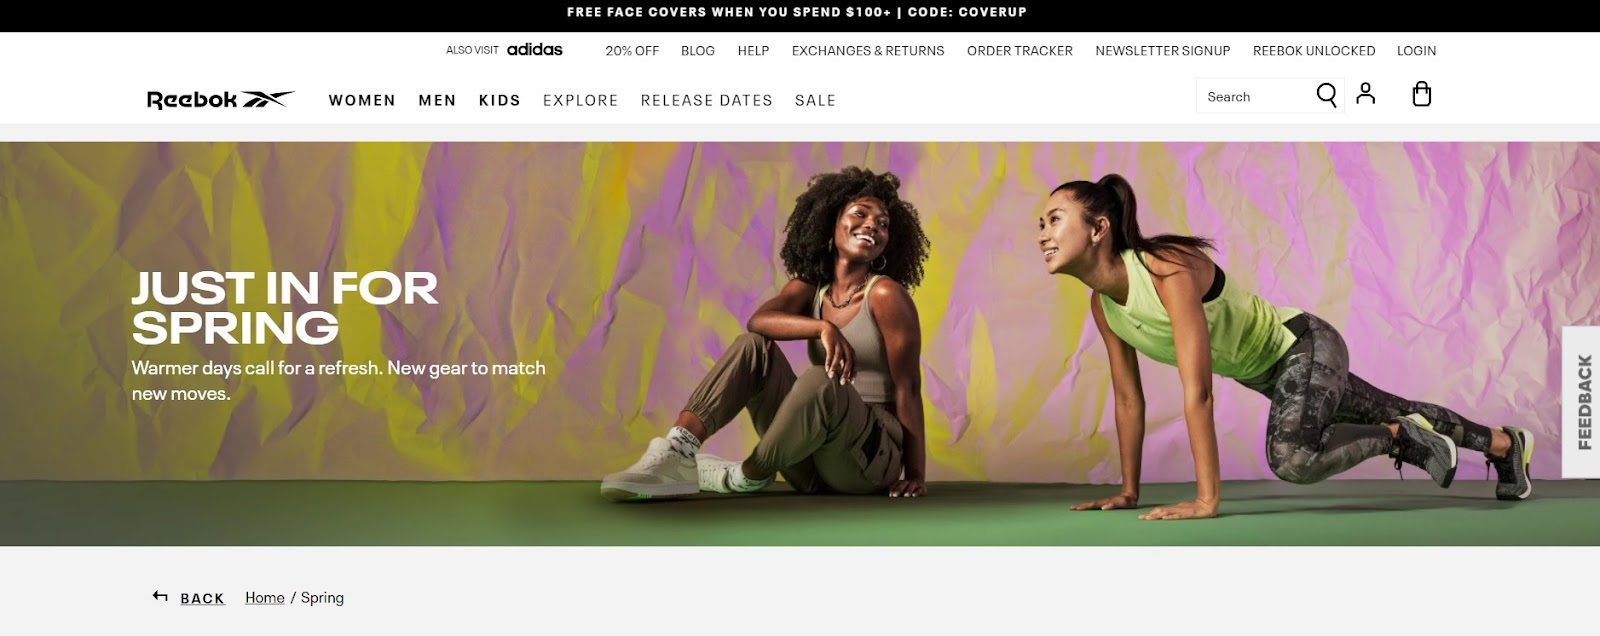 How to use my Reebok coupon codes, Reebok offers & Reebok coupons to shop at Reebok UAE & Reebok shoes and many more.